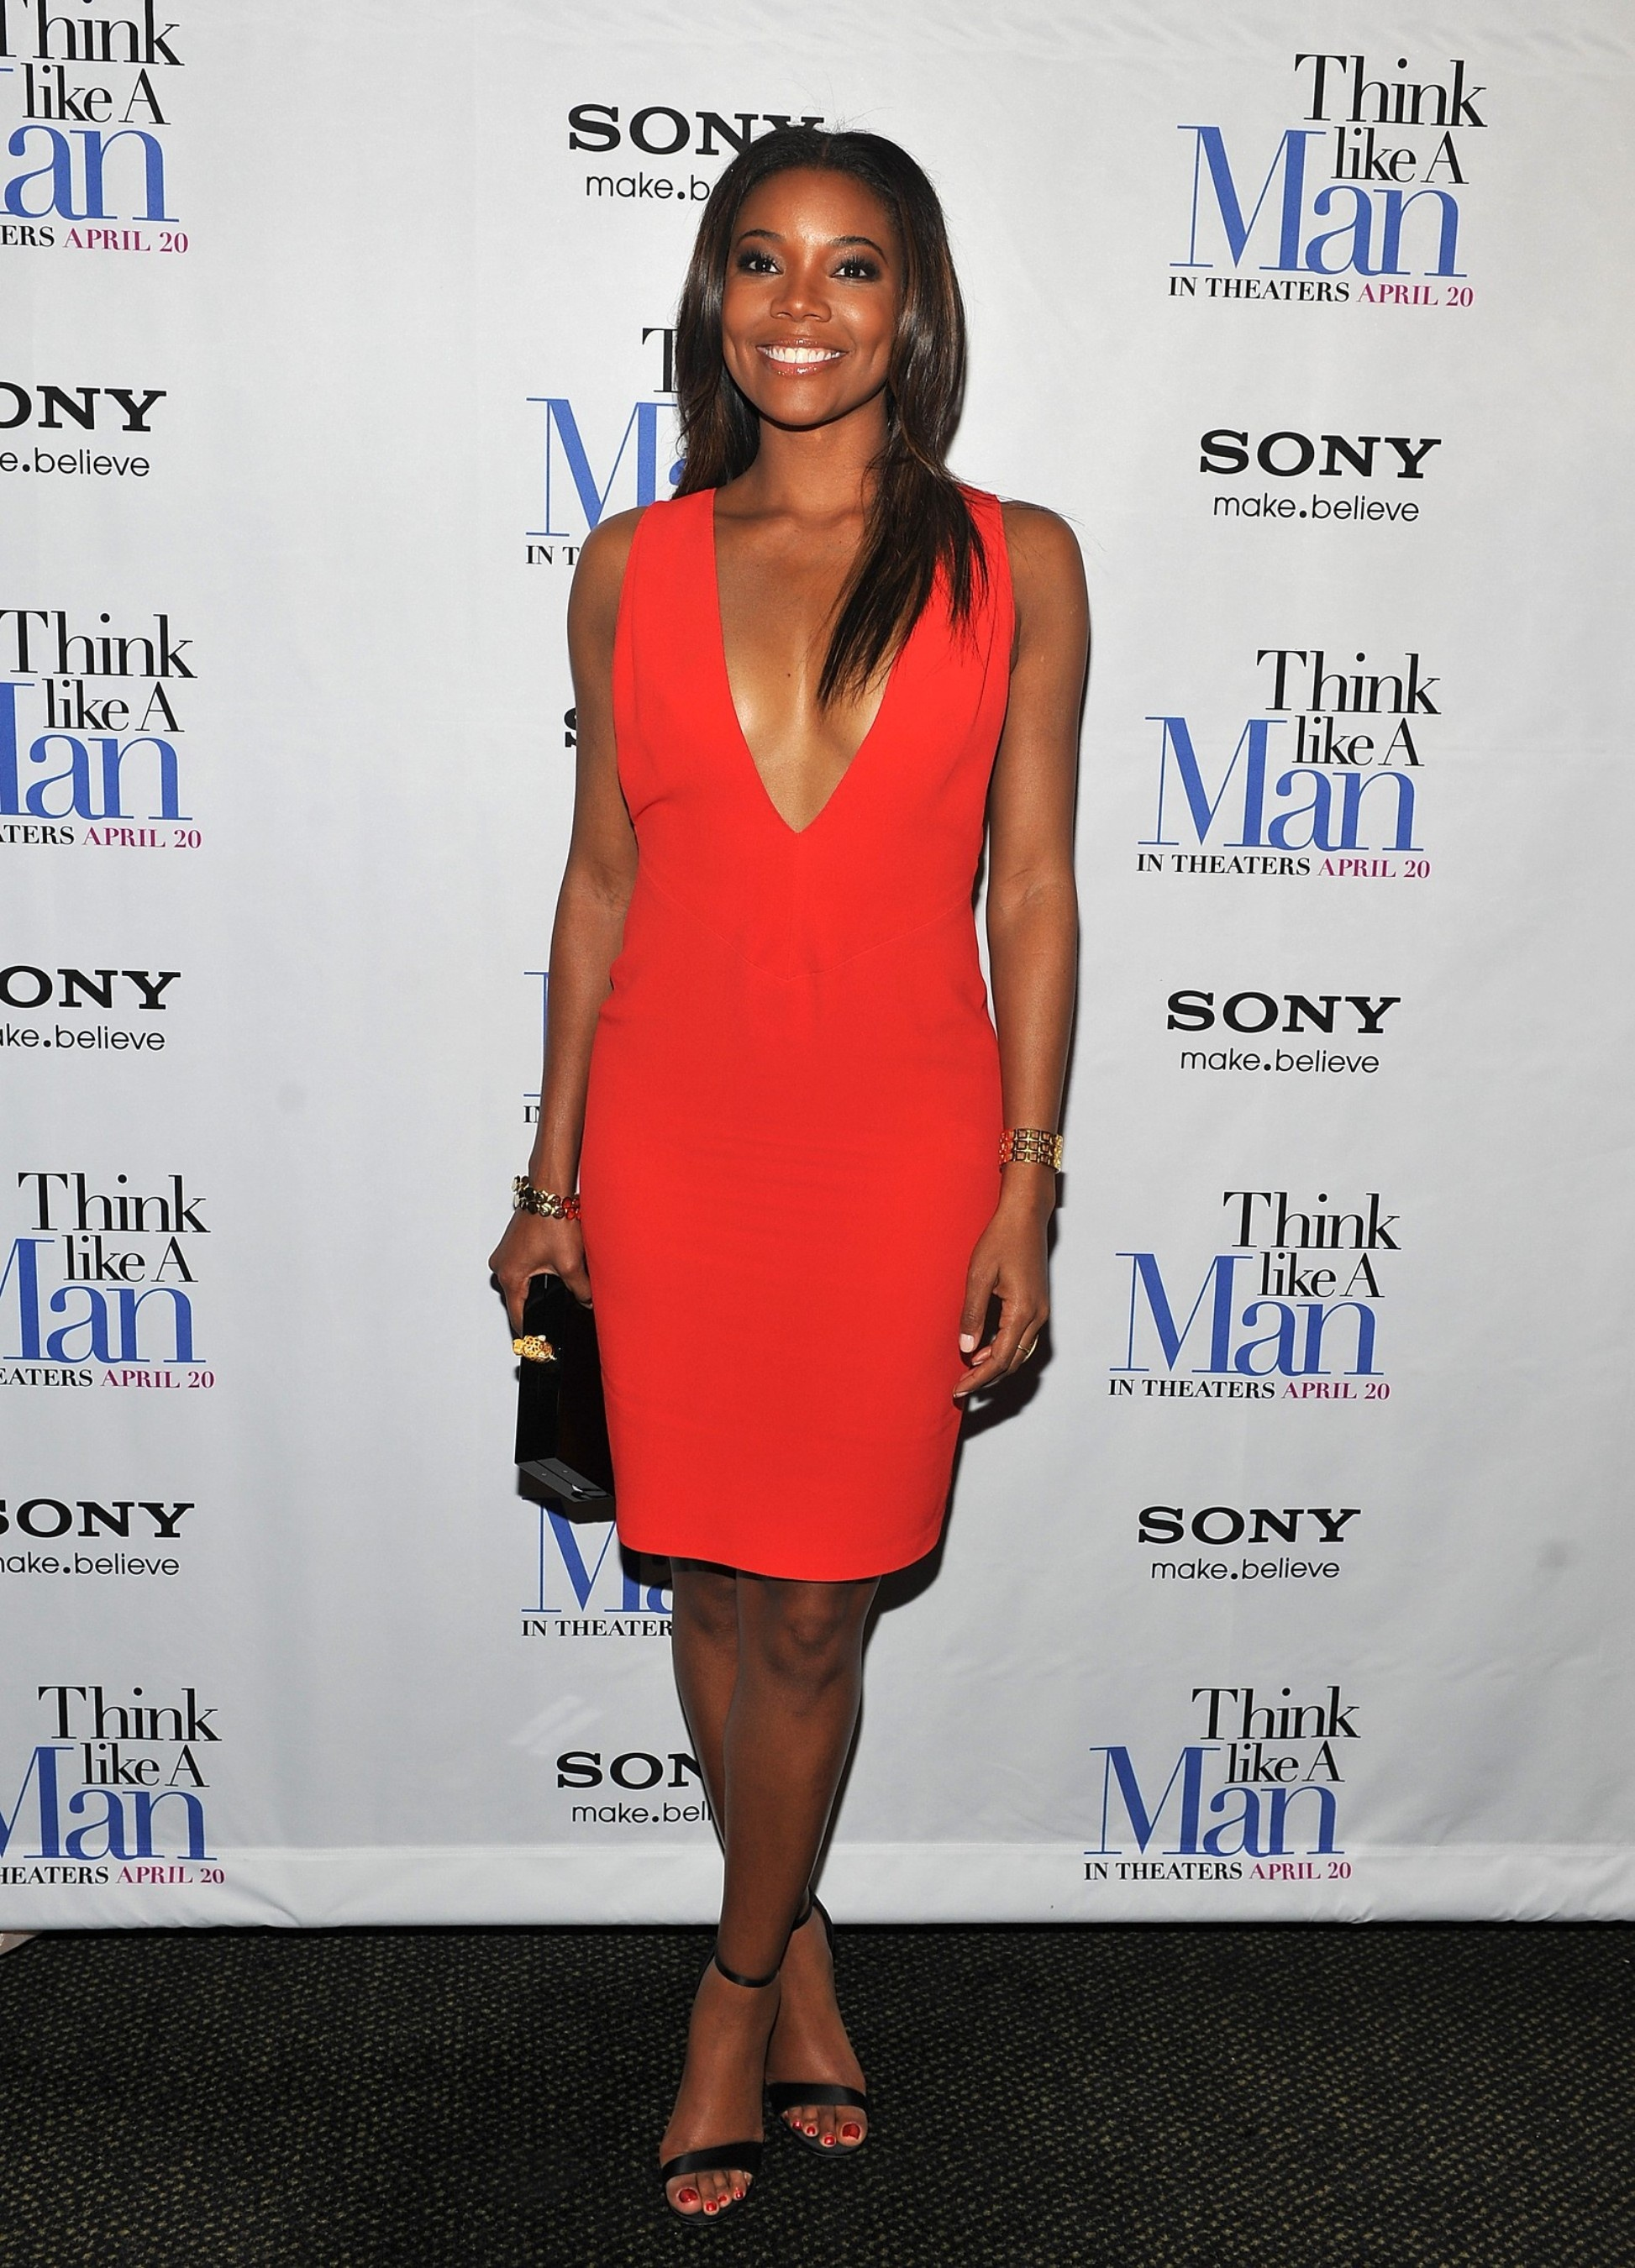 717815315_Gabrielle_Union_Think_Like_A_Man_Screening_In_New_York_April_04_2012_004_122_83lo.jpg